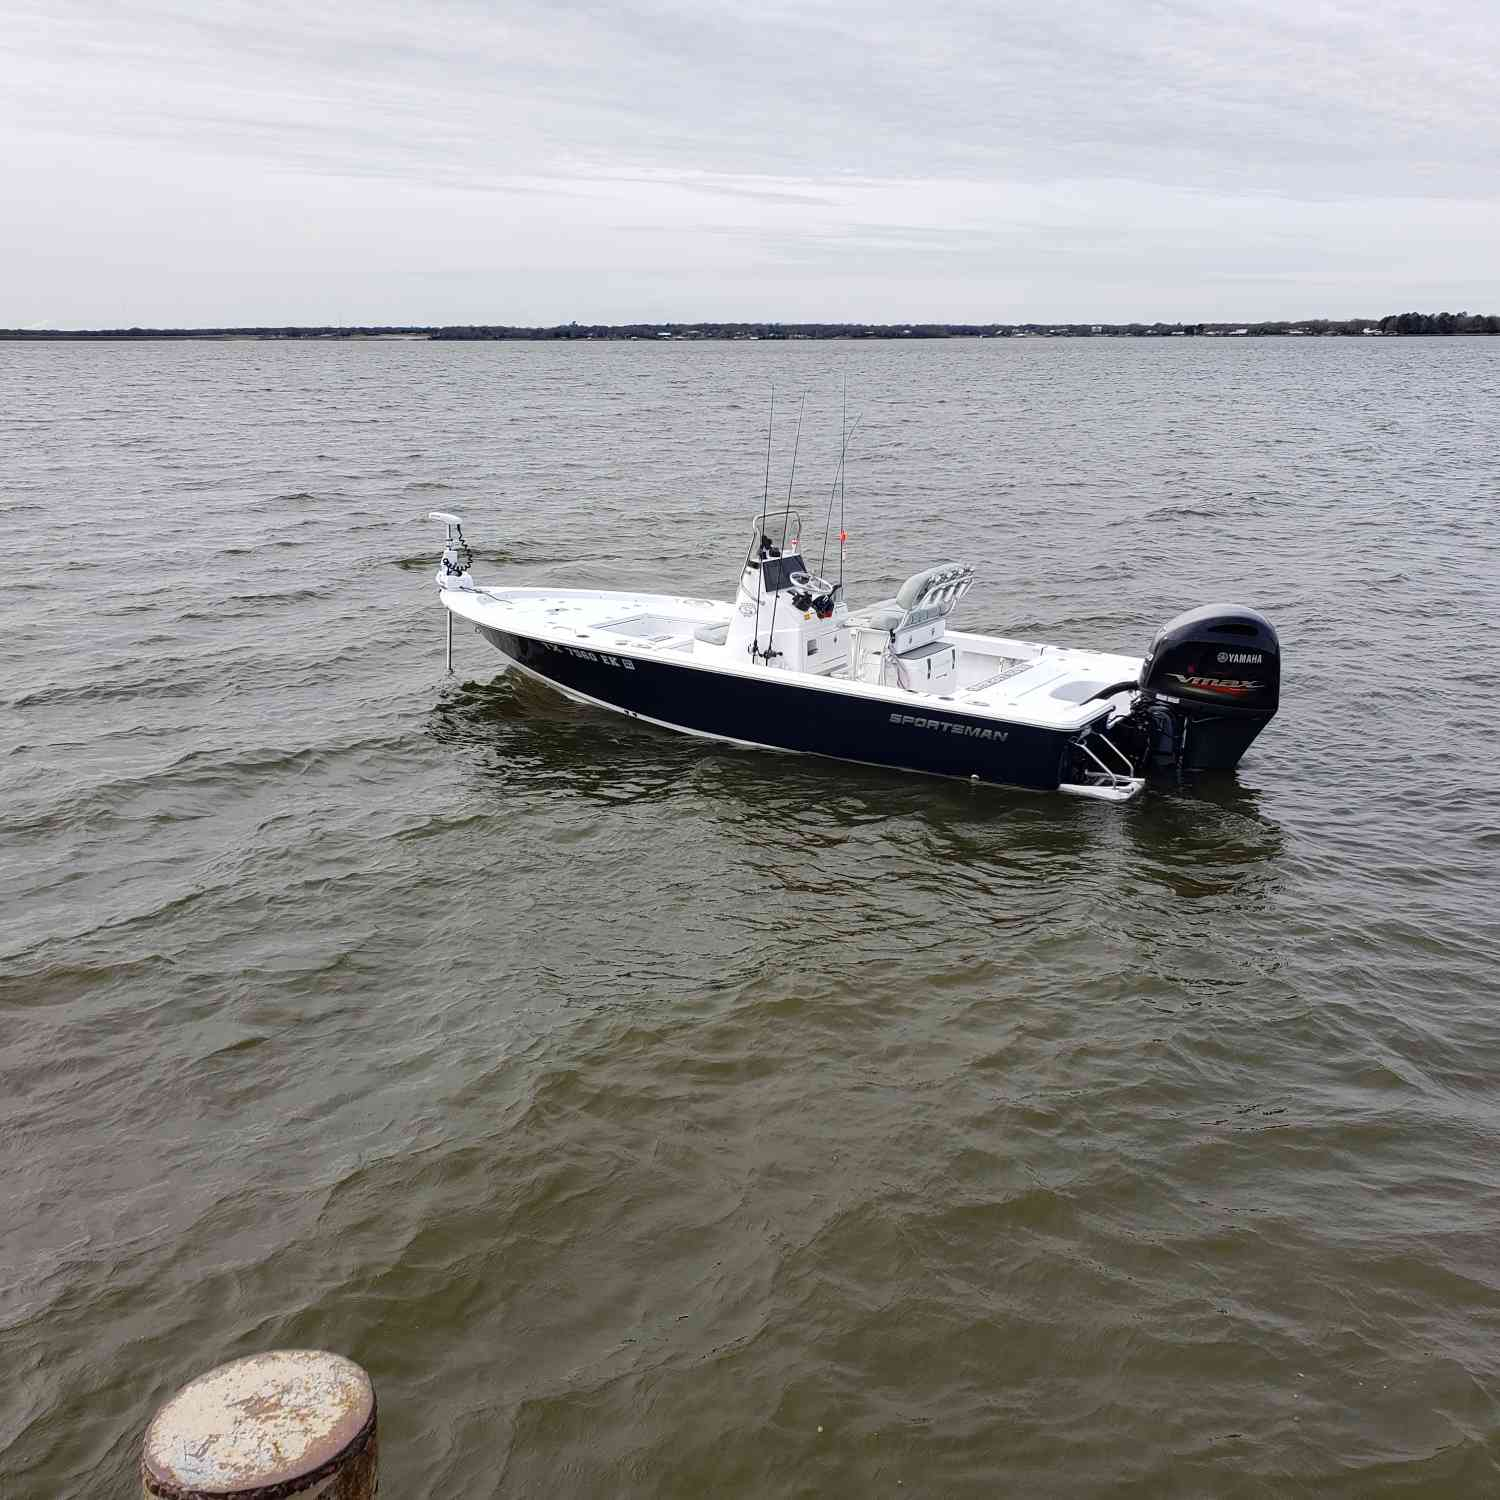 Title: Love this boat!! - On board their Sportsman Masters 207 Bay Boat - Location: Lake Limestone, Texas. Participating in the Photo Contest #SportsmanFebruary2020